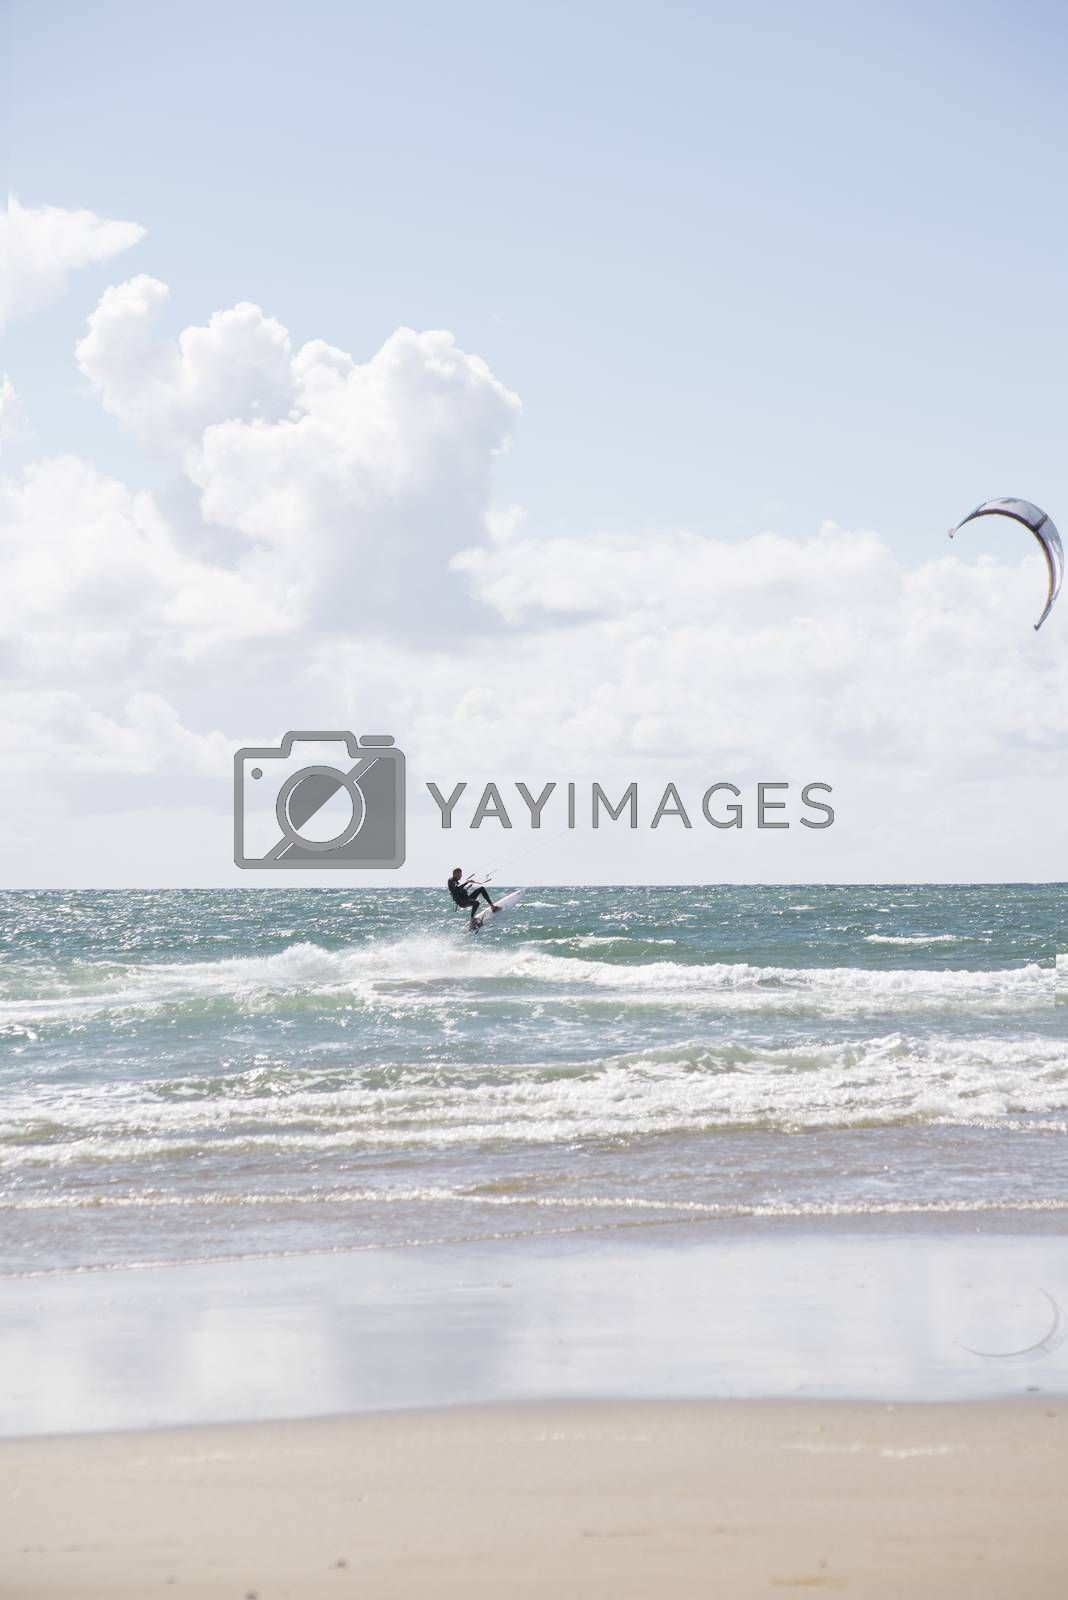 kite surfer on beautiful waves by morrbyte